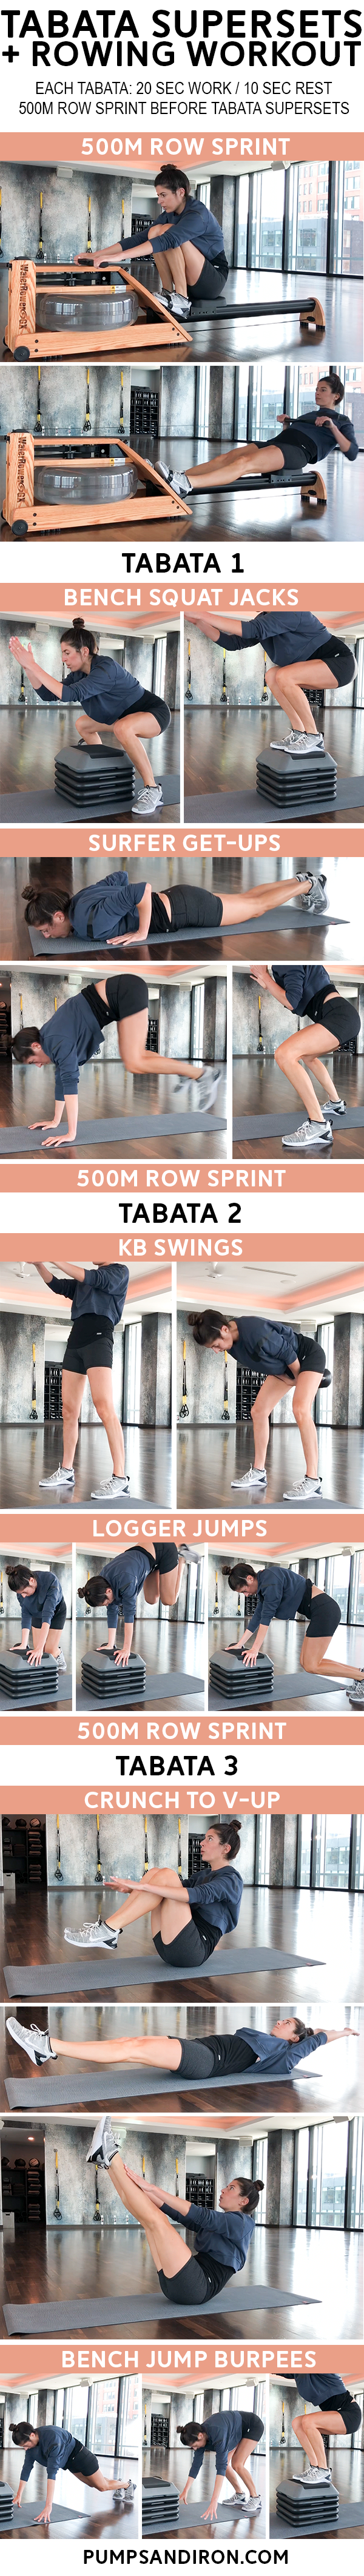 tabata supersets rowing gym workout - Rowing + Tabata Supersets Workout